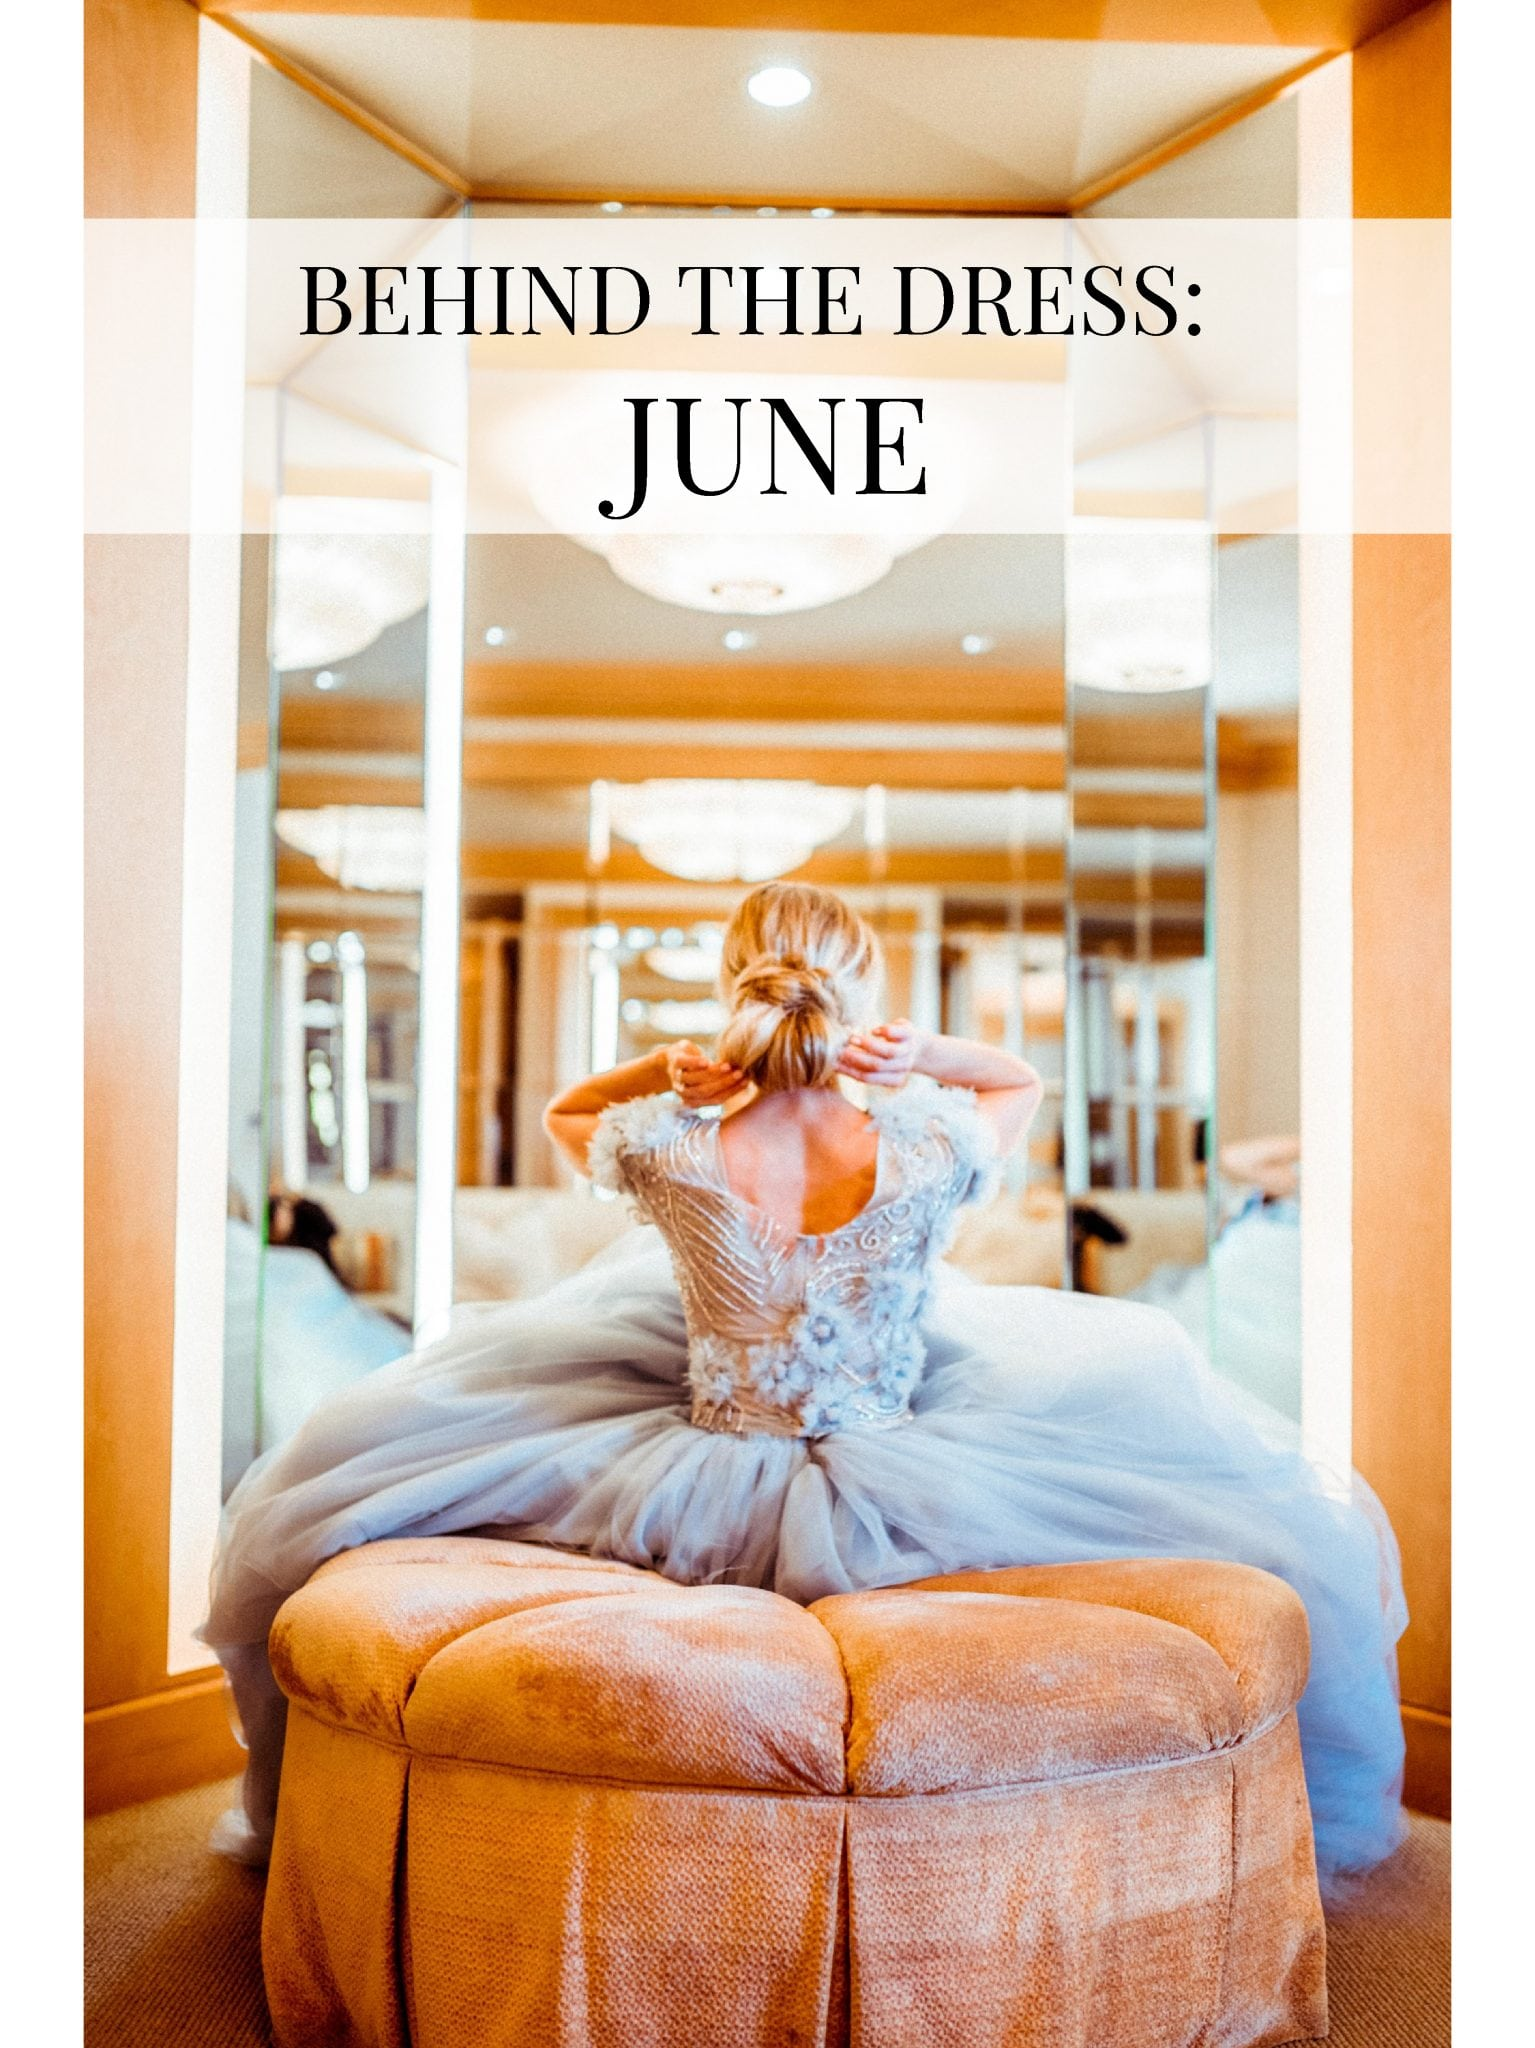 Behind The Dress: June